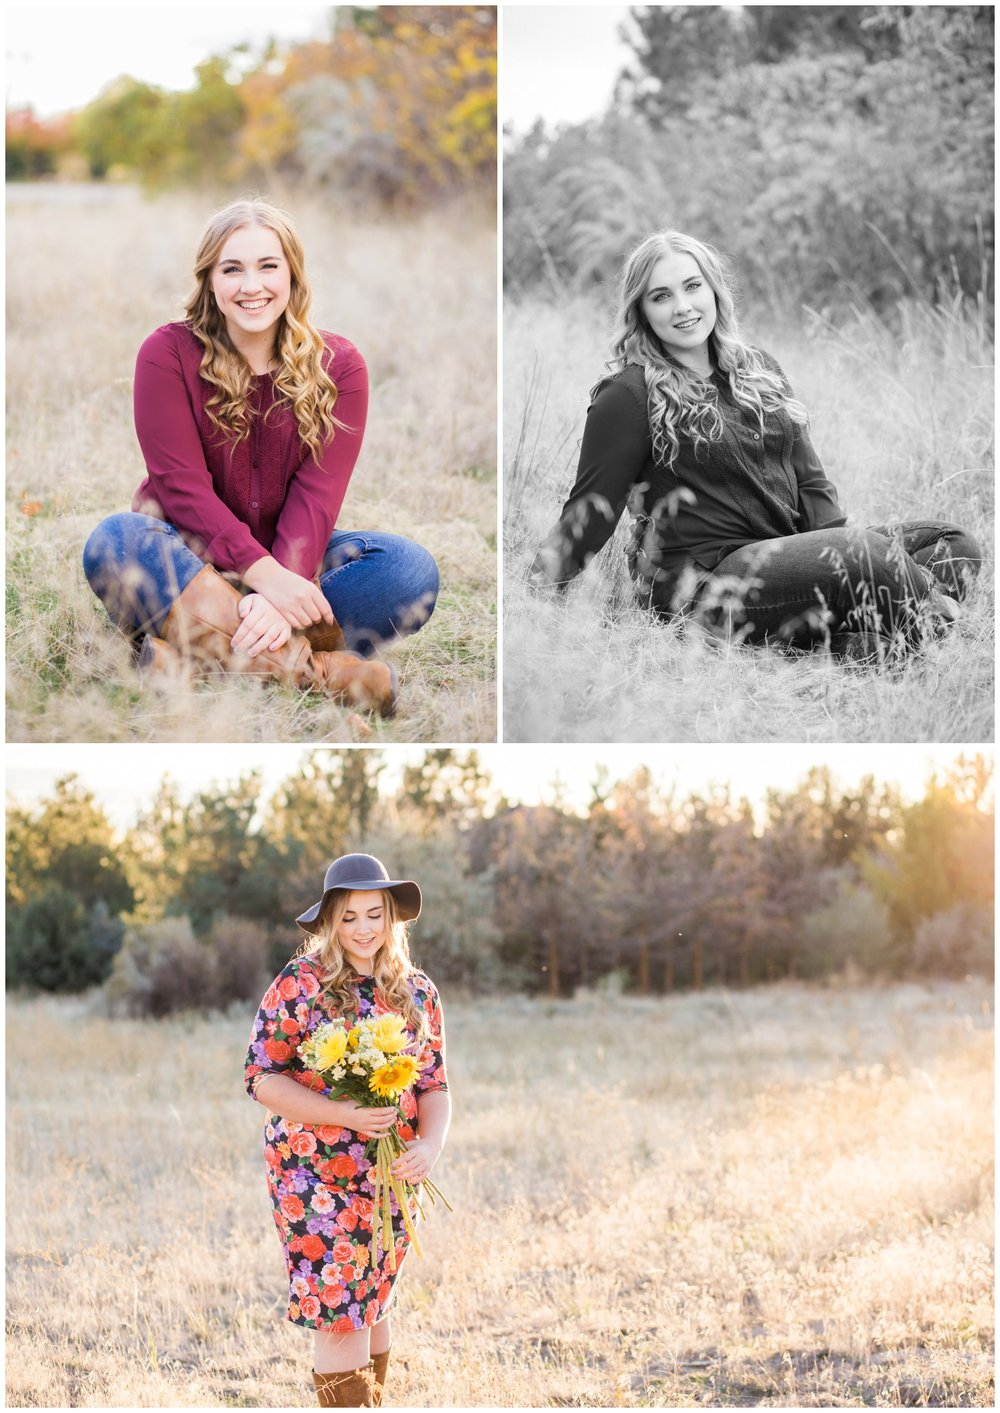 Oregon senior photographer, McKenna Rachelle photography, photographs senior girl in open field